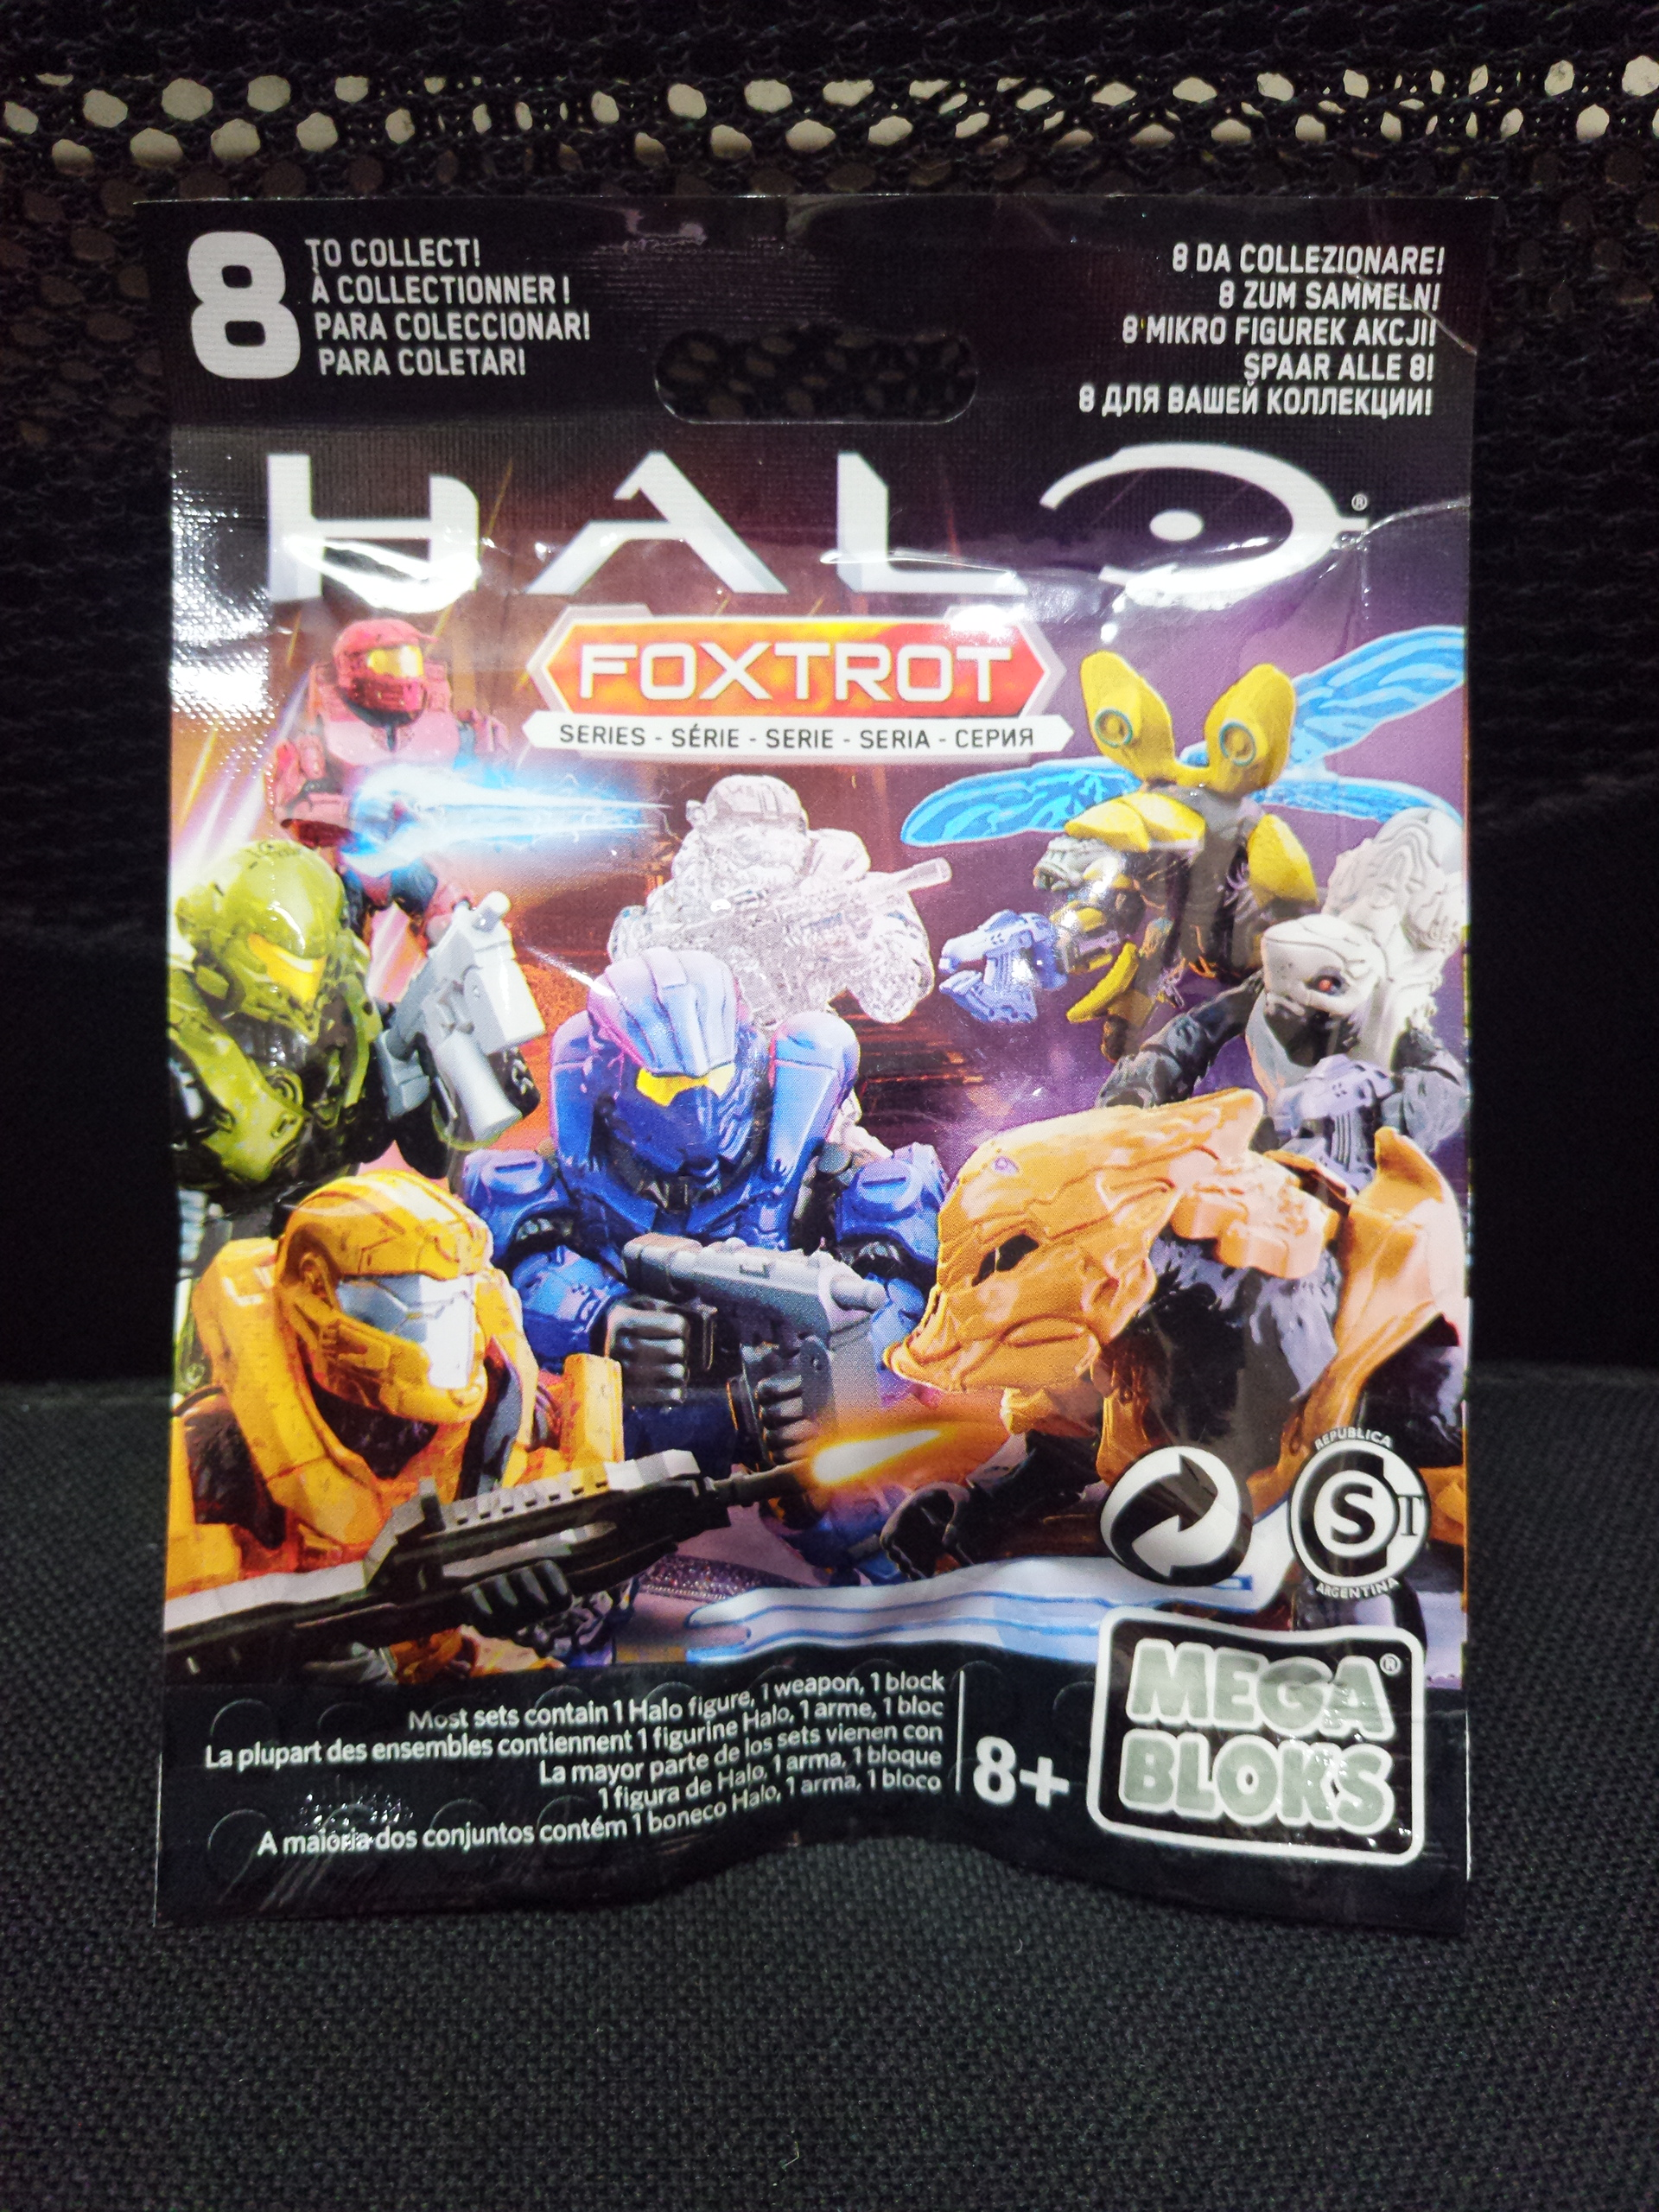 LOT OF 9 SEALED BLIND BAGS HALO FOXTROT SERIES CNC84